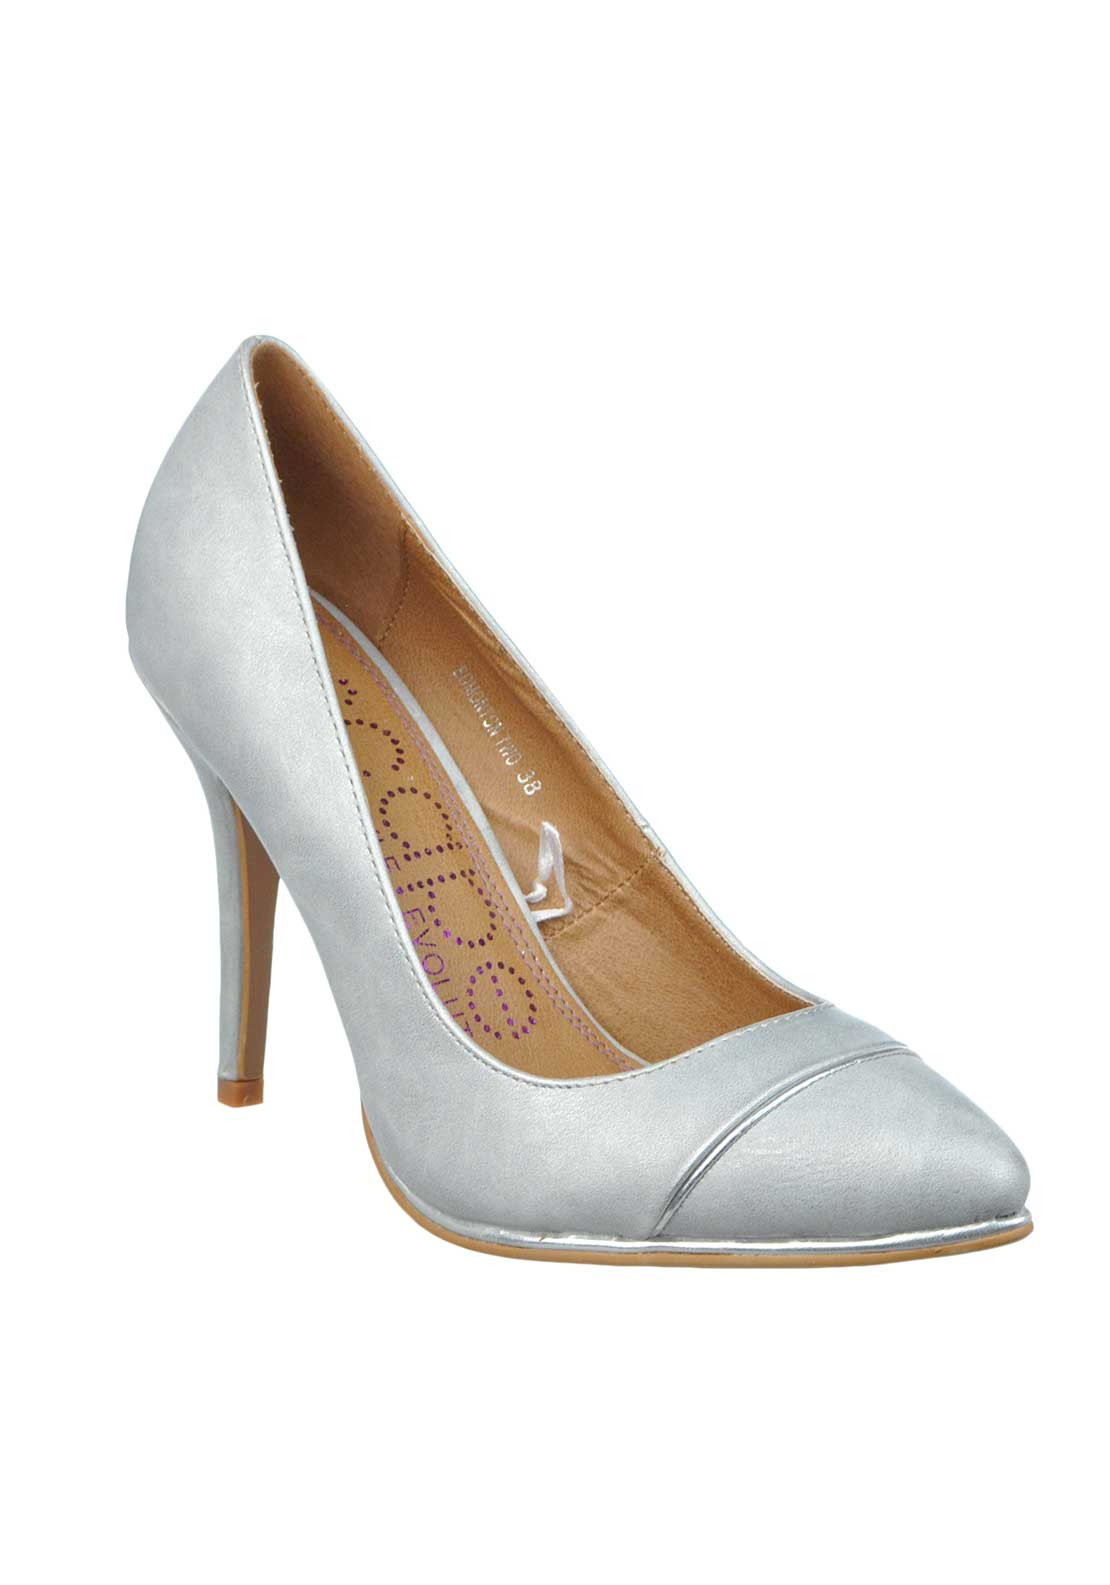 Escape Edmonton Metallic Pointed Toe Heeled Shoes, Silver